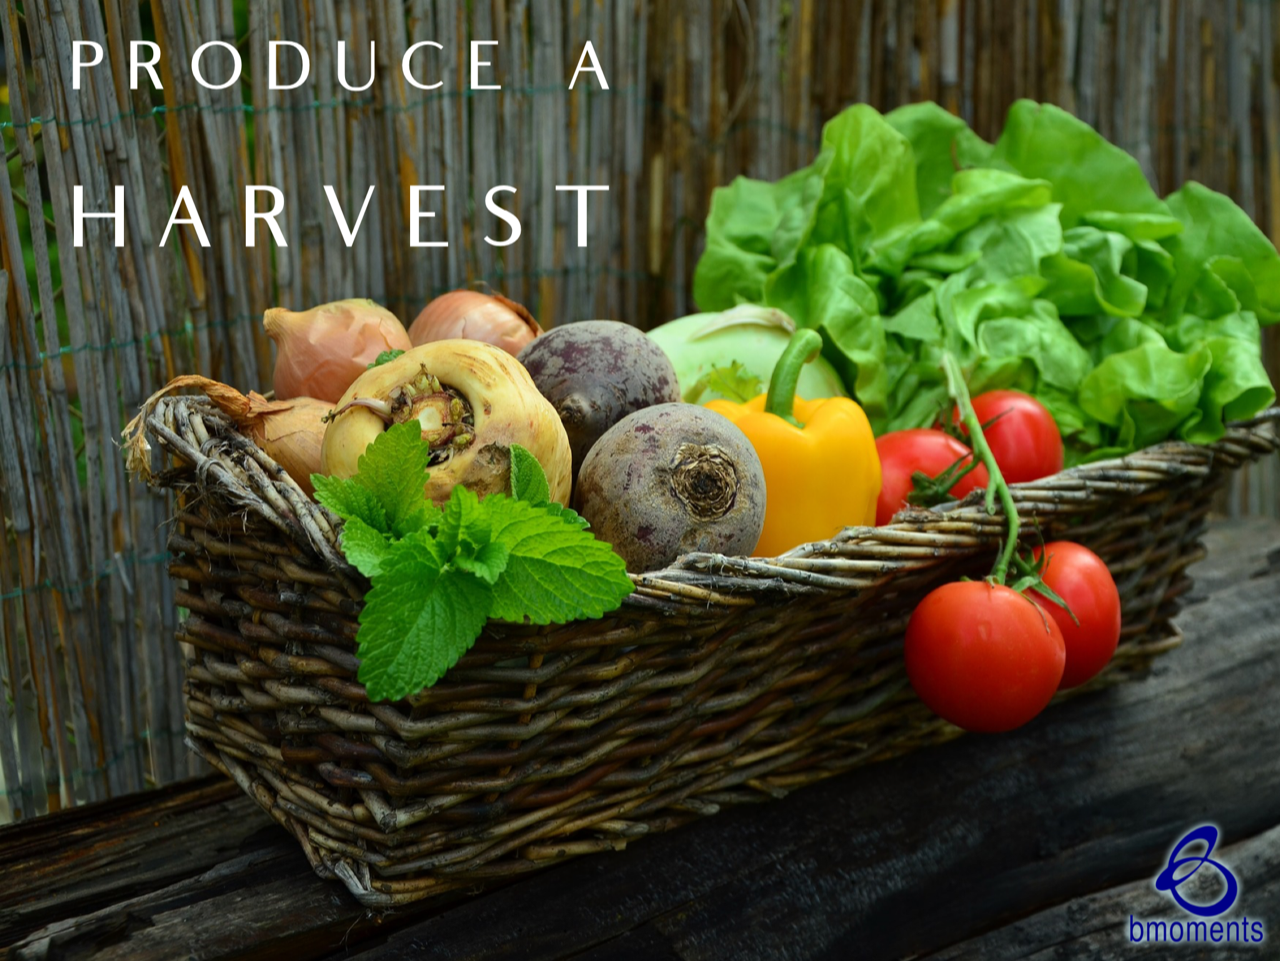 Is Your Seed Producing a Harvest?